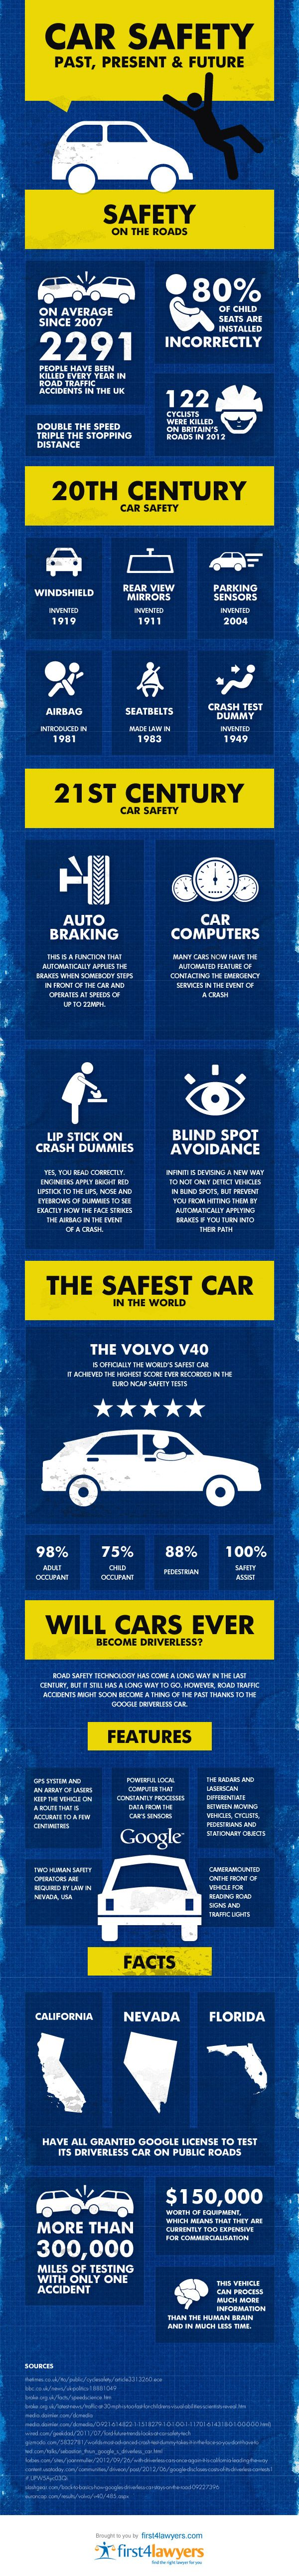 Car safety has come a long way in recent times. Almost since the car was invented, people have been striving to make travel on the road as safe as pos